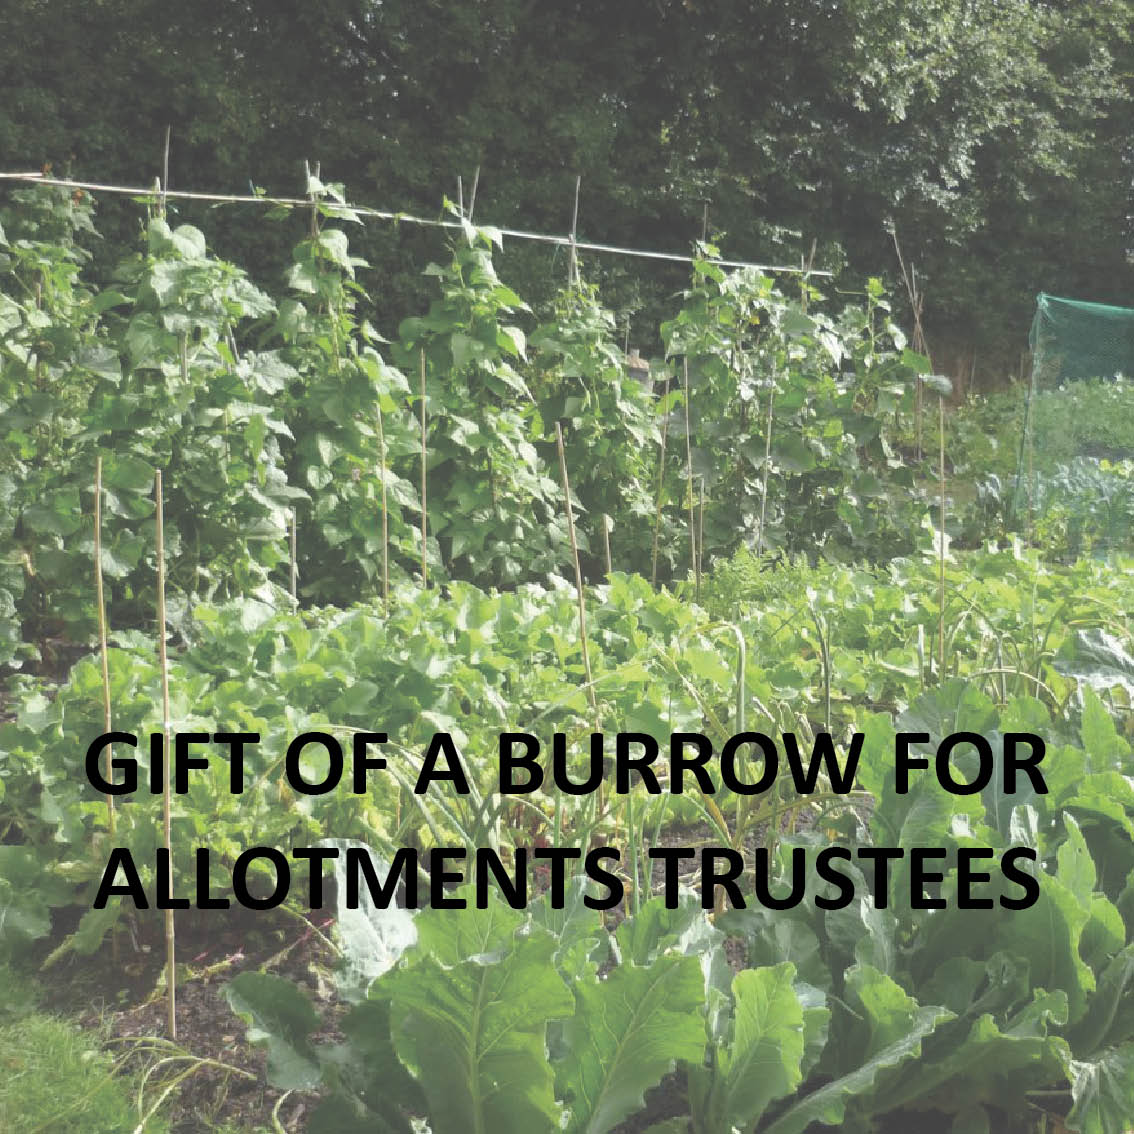 Hyperlink to the allotments Trustee meetings